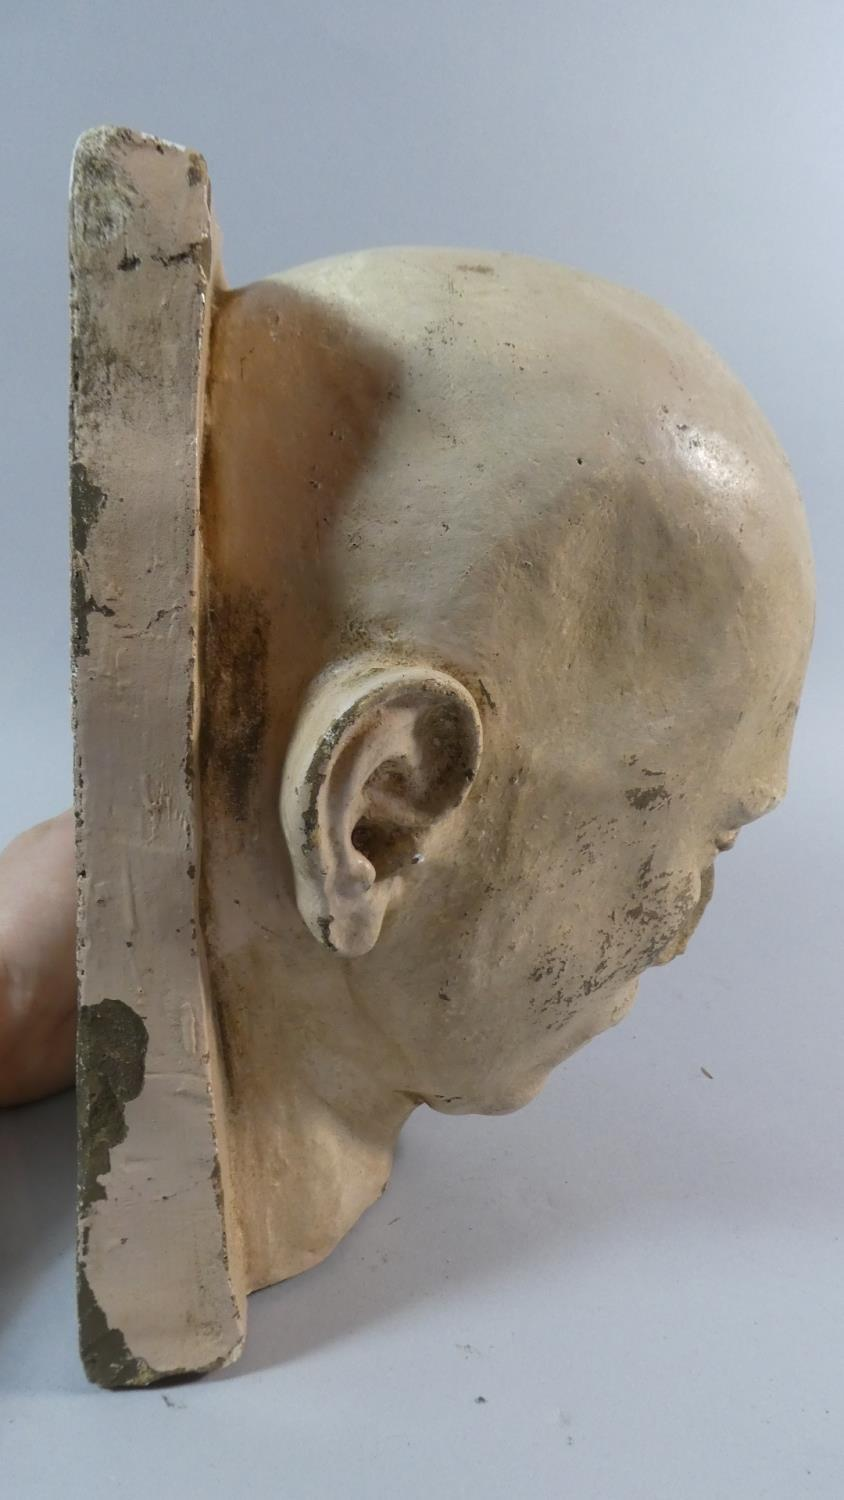 A 19th Century Plaster Death Mask of a Shaven Headed Man, Possibly a Convict or Asylum Inmate. - Image 3 of 7